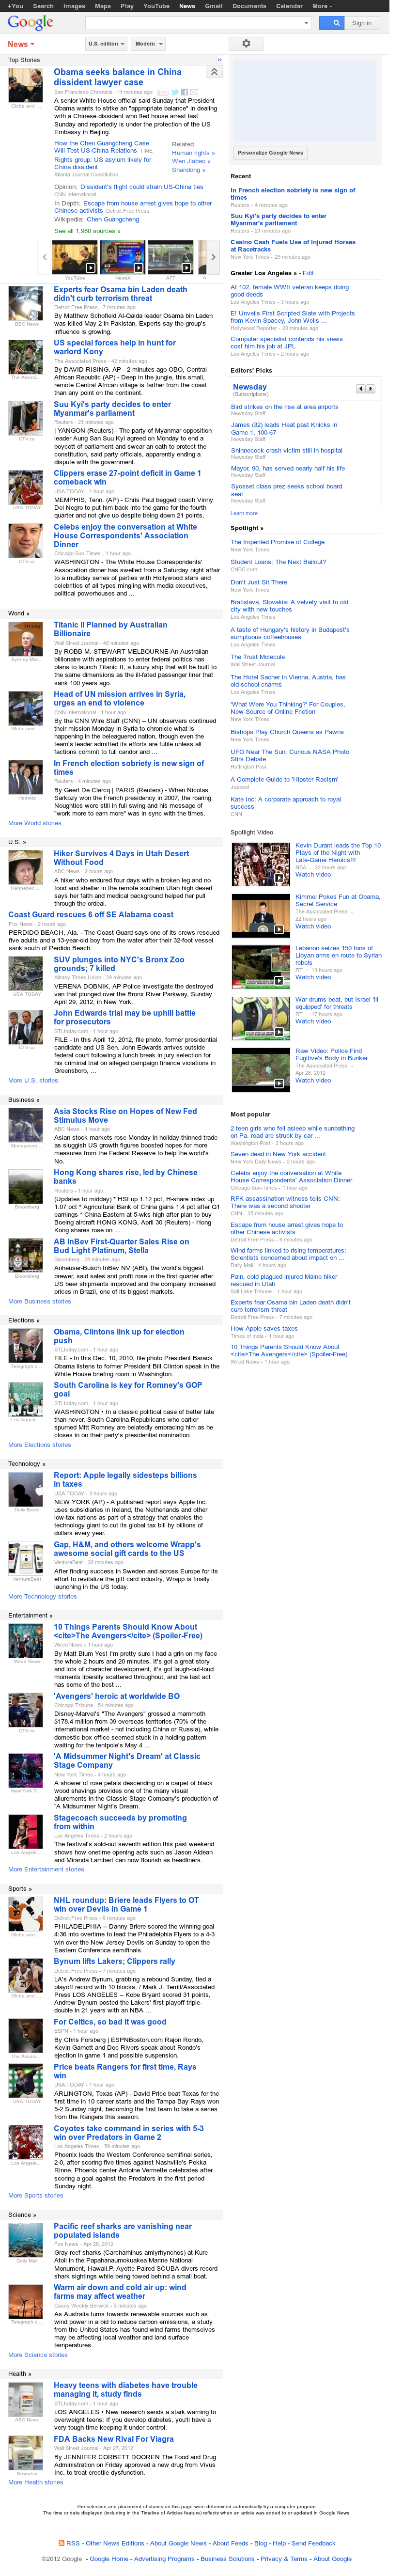 Google News at Monday April 30, 2012, 6:07 a.m. UTC